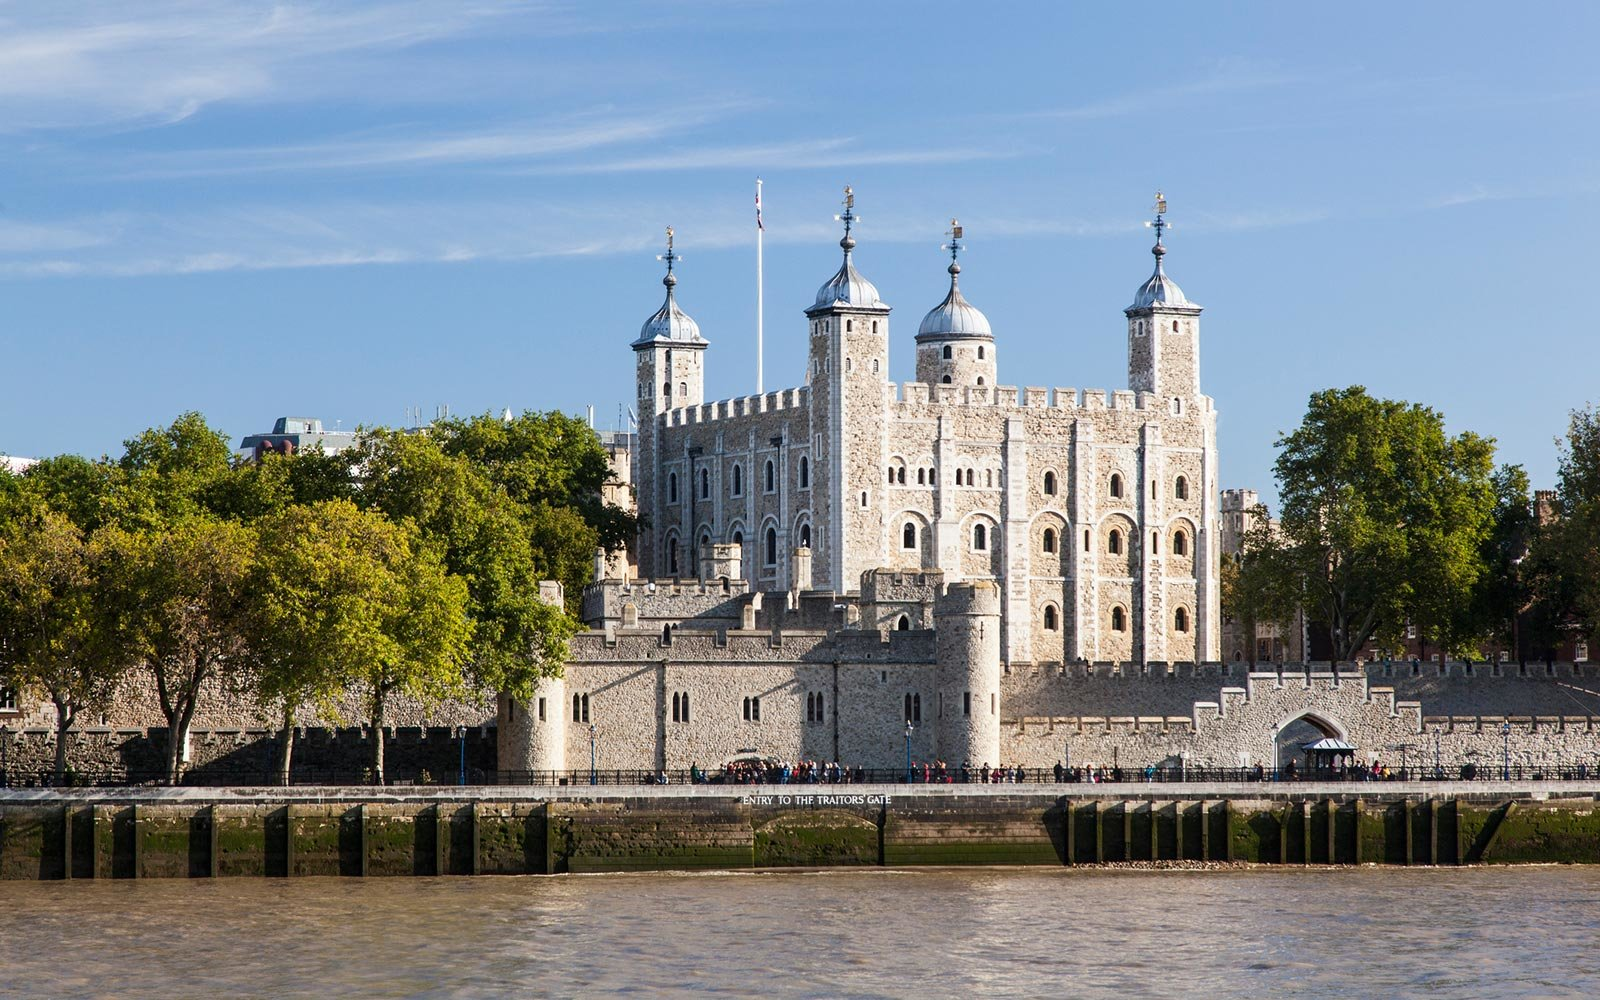 9. Tower of London